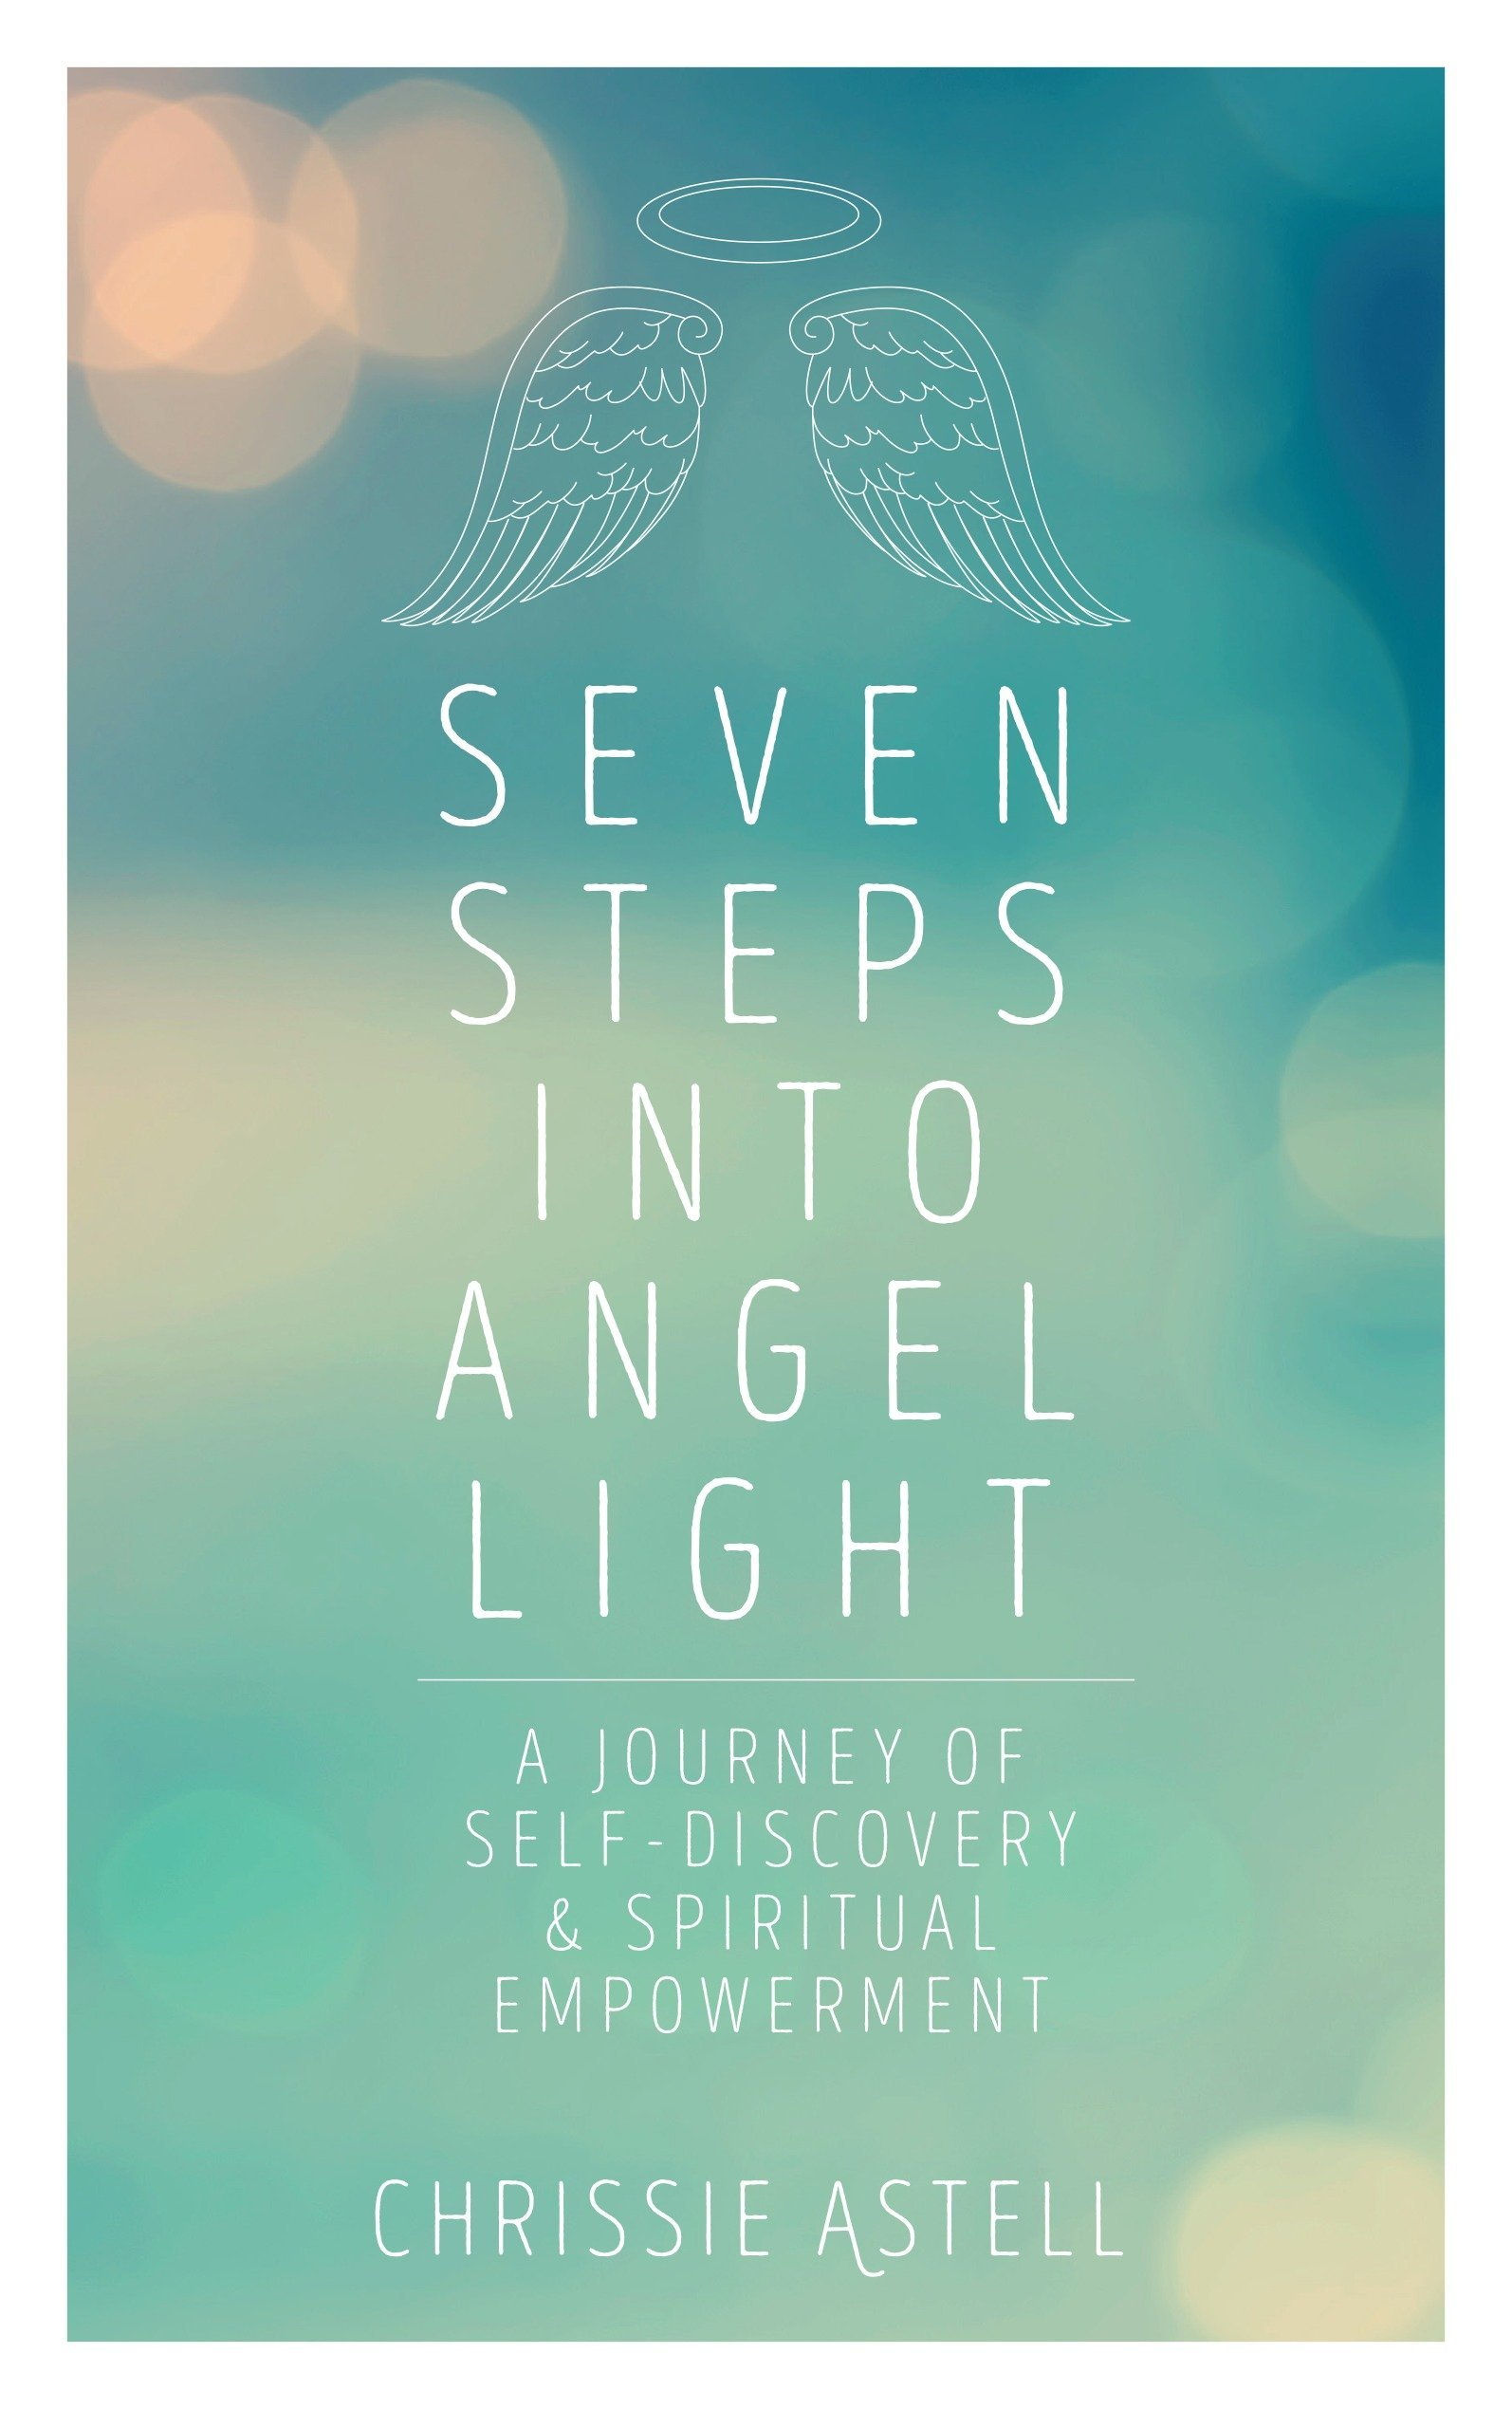 Seven Steps into Angel Light: A Journey of Self-Discovery and Spiritual Empowerment PDF